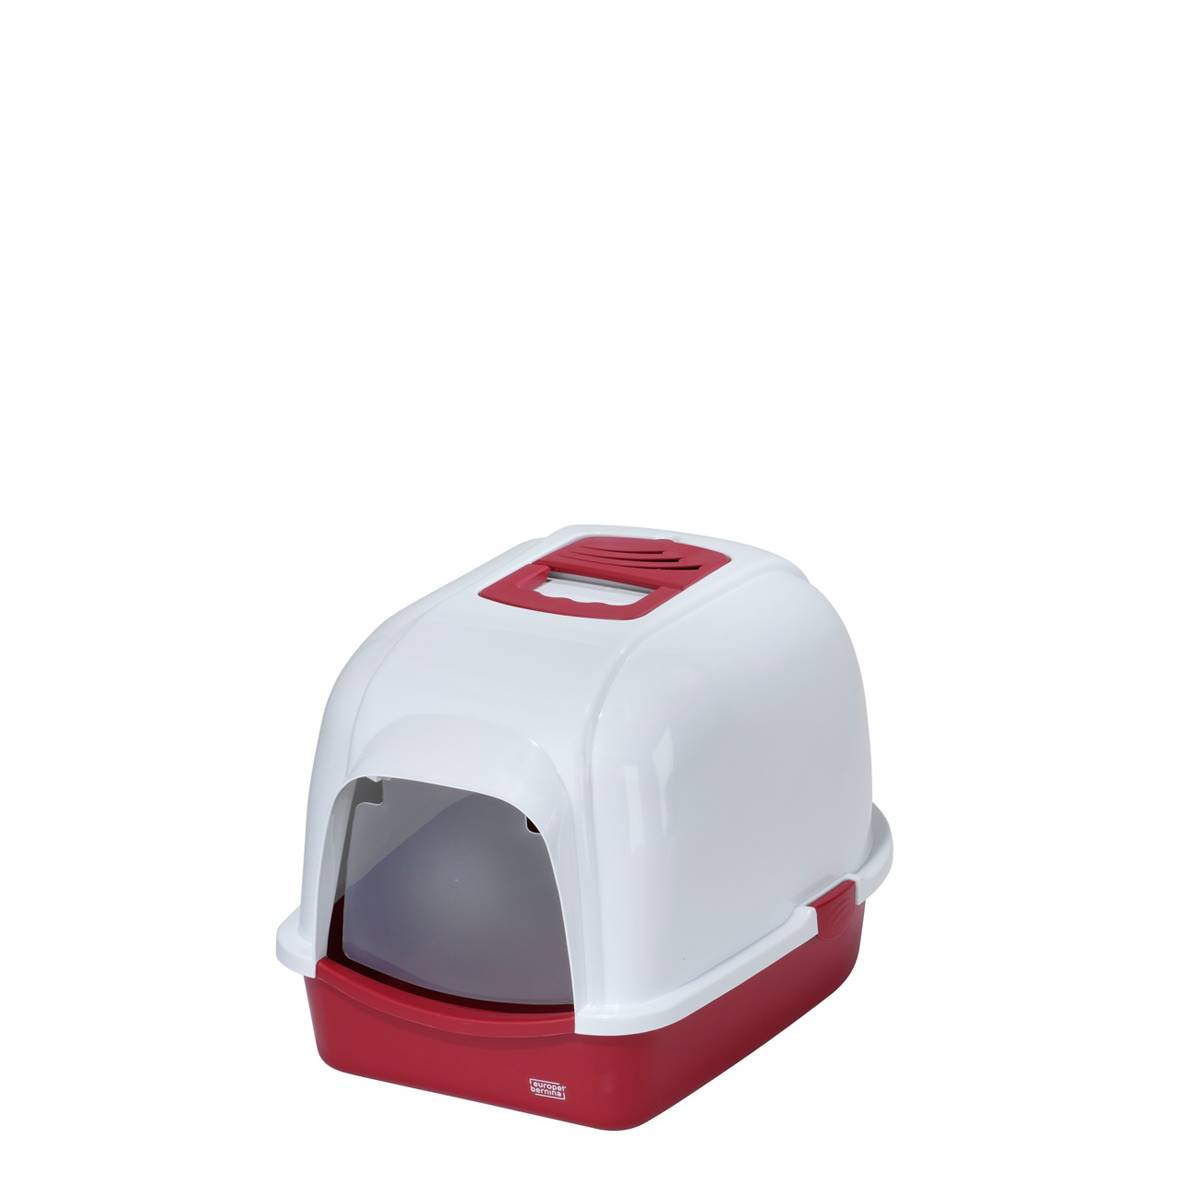 EBI - Toilette de Chat Eclipse 60 Rouge